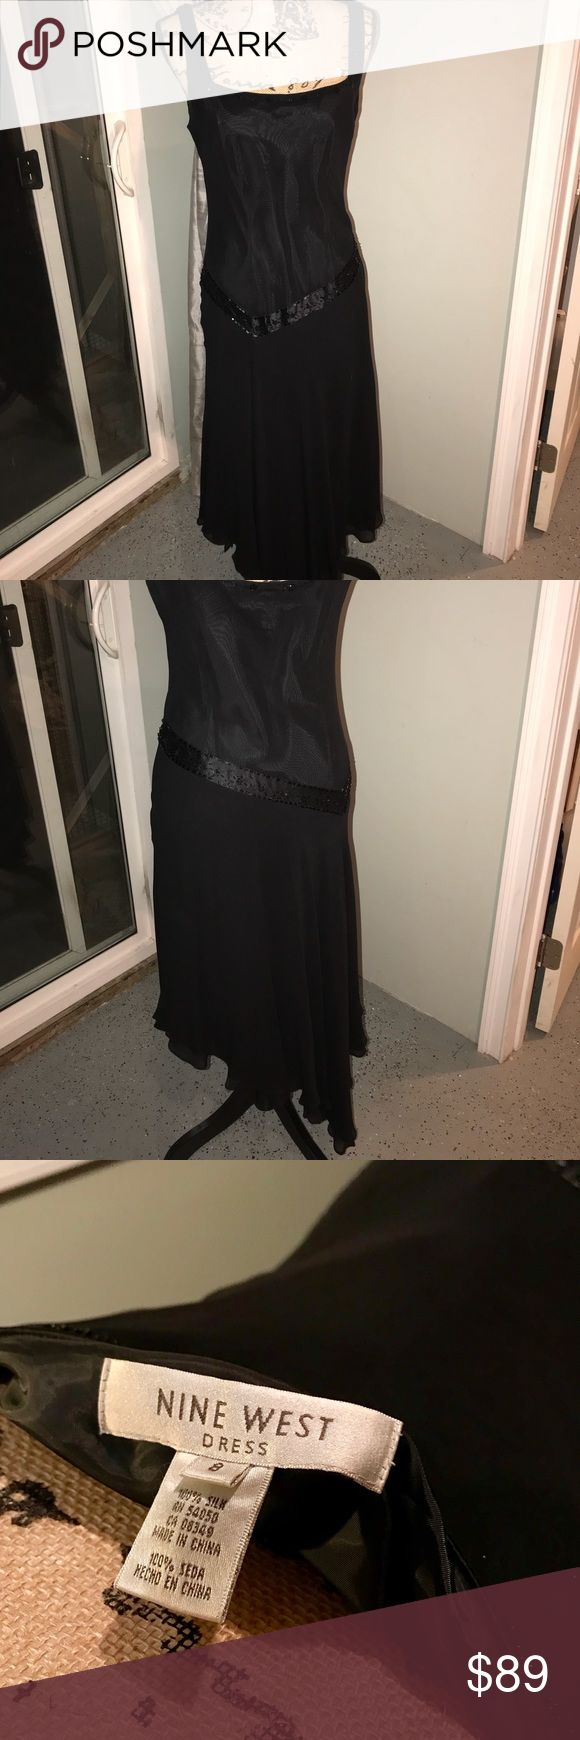 Vintage 30s-style flapper Dress 100% black silk. 30s flapper style cocktail party dress. Drop waist, beaded and asymmetrical handkerchief hem. Skirt is split front and back with a taffeta lining underneath. Nine West Dresses Asymmetrical